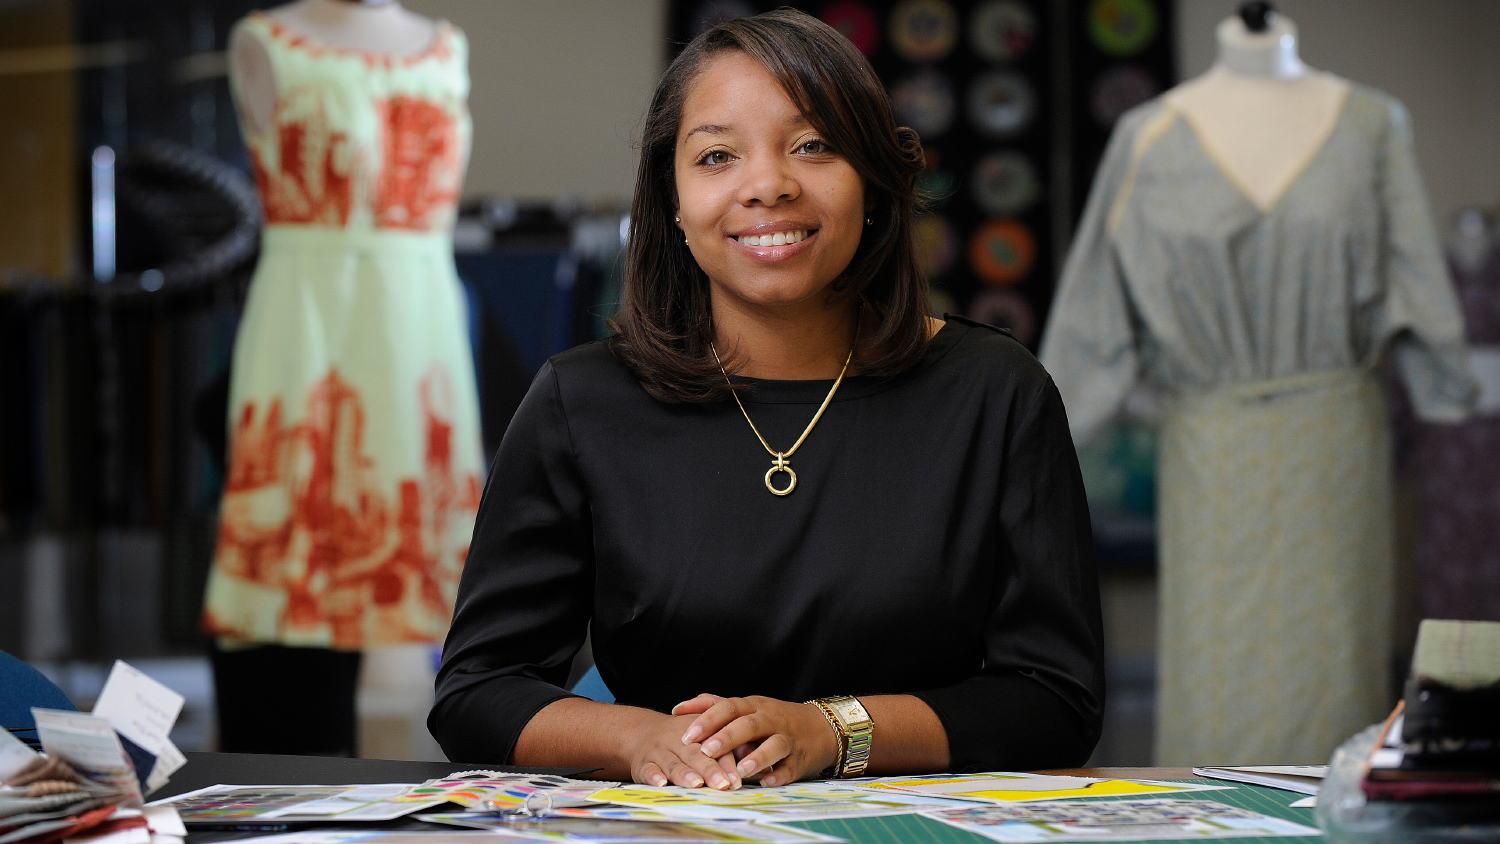 A fashion designer works on her boutique clothing line.